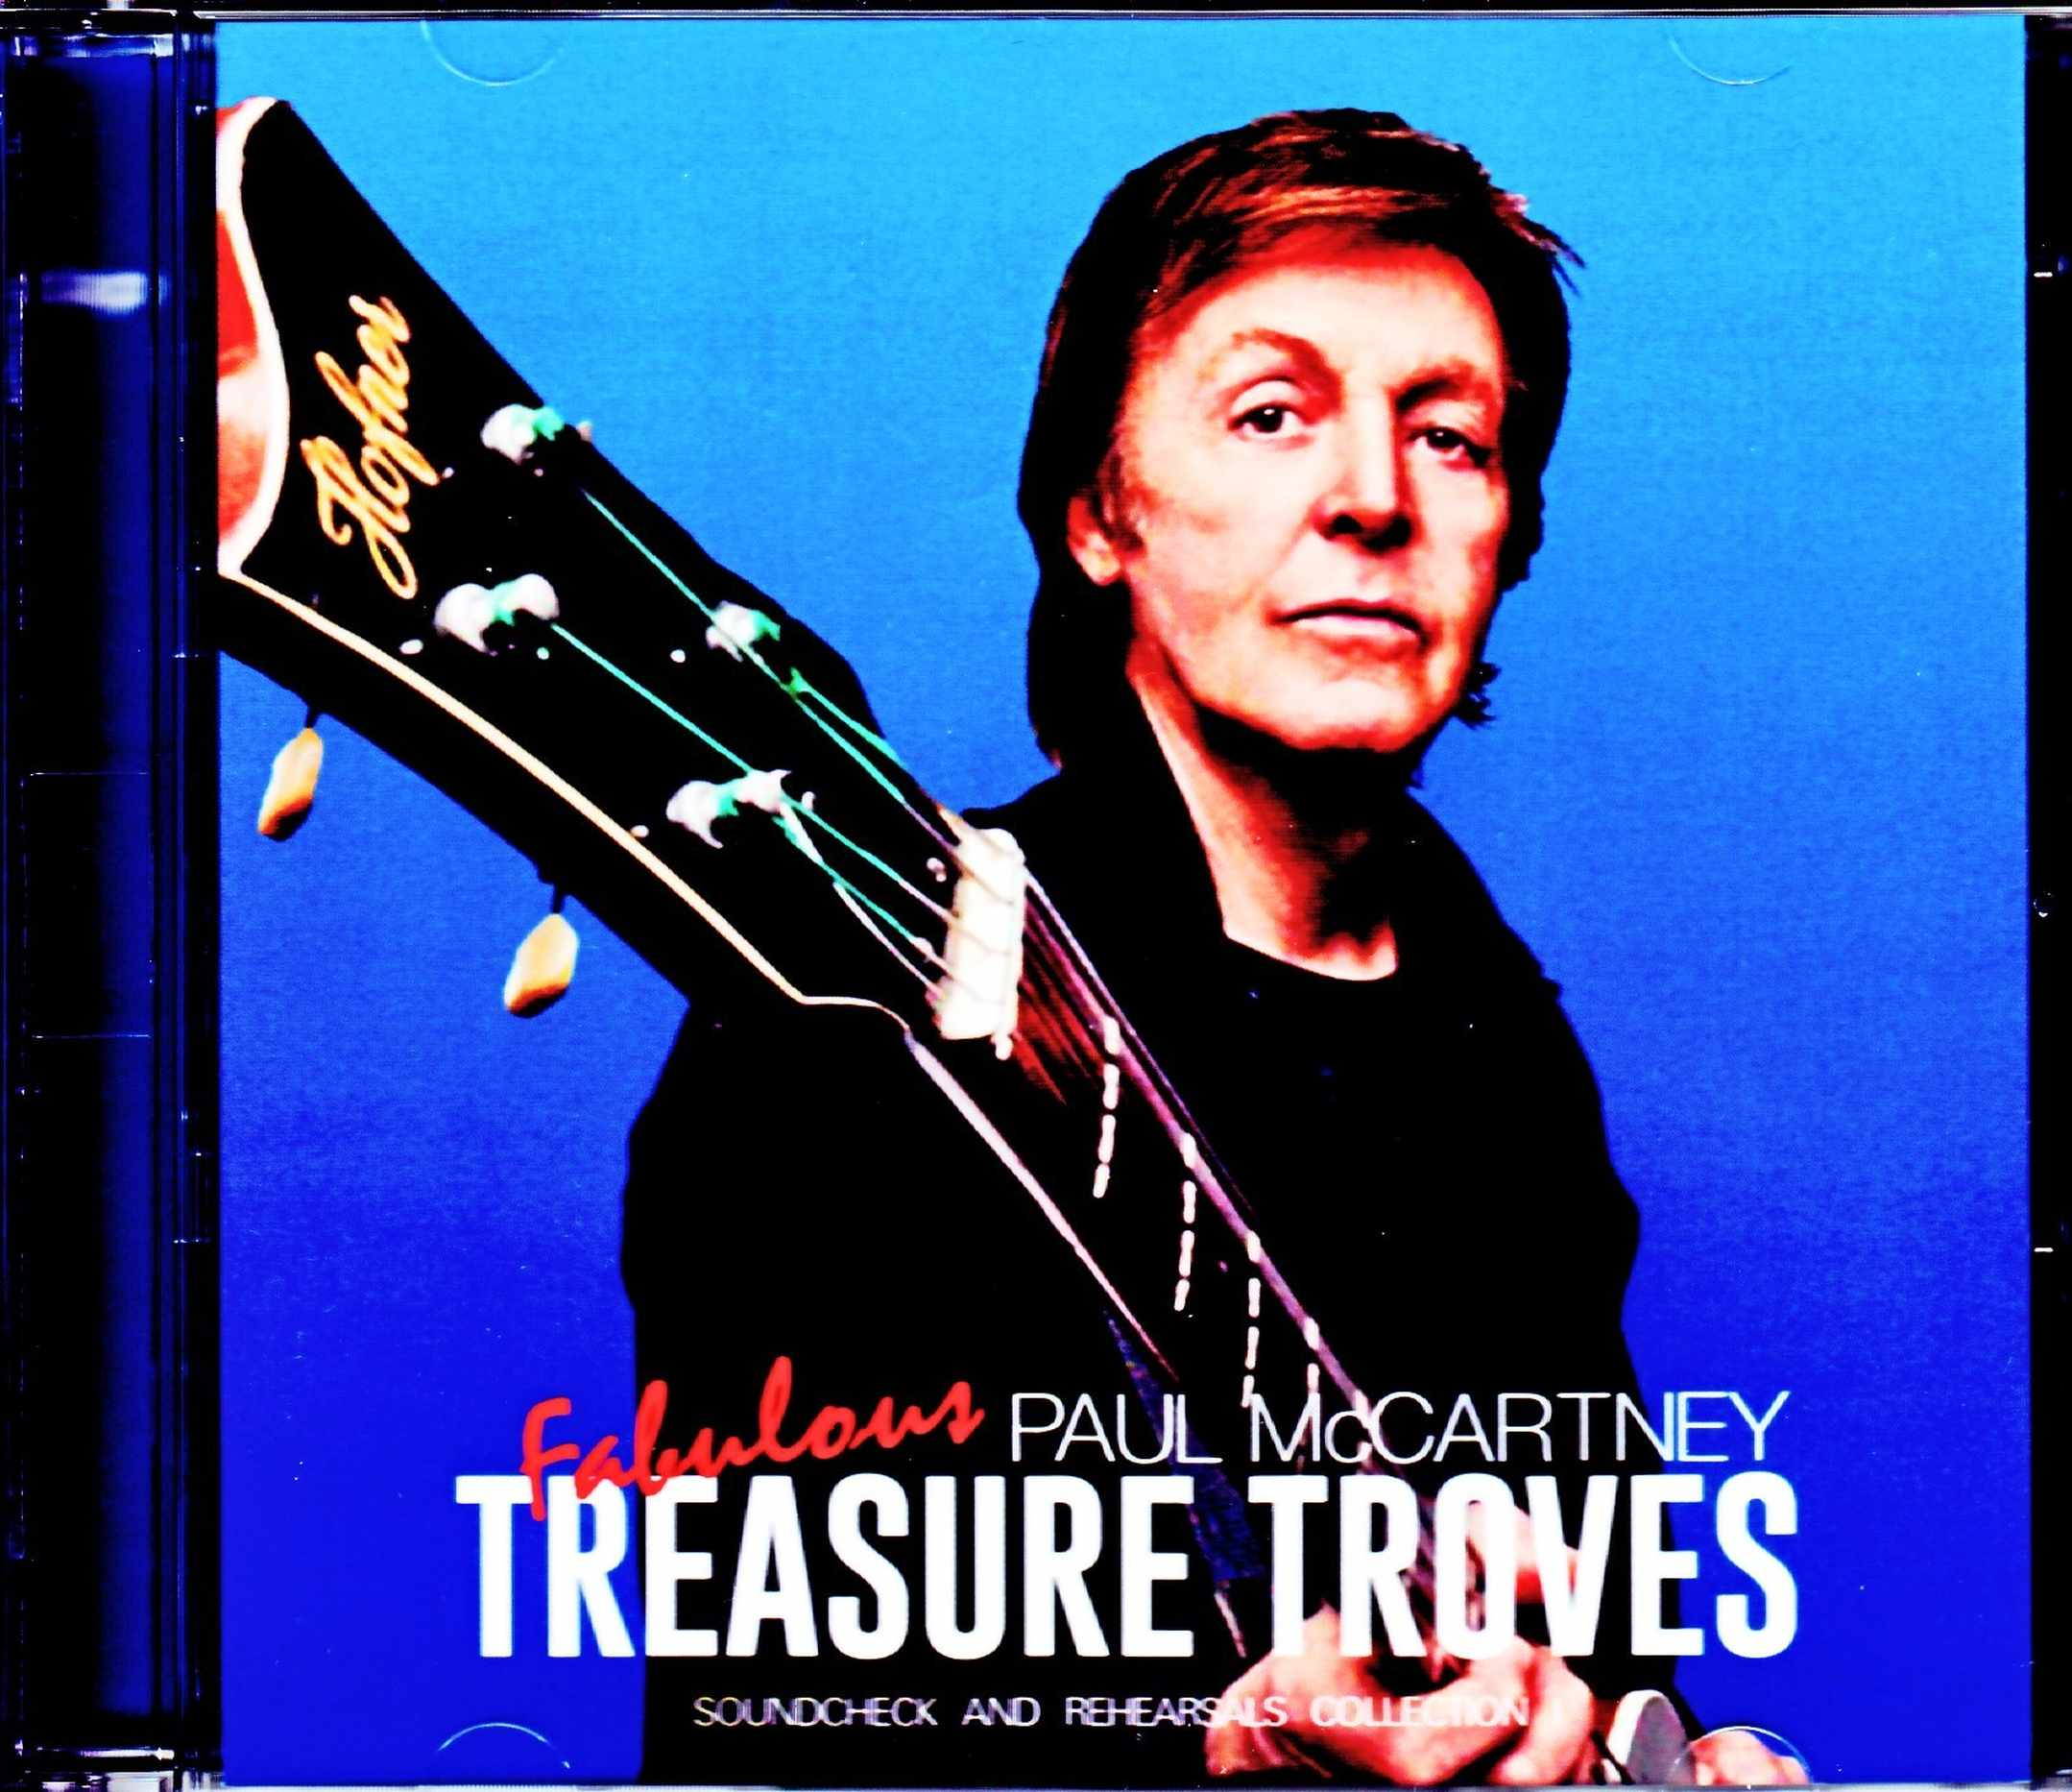 Paul McCartney ポール・マッカートニー /Soundcheck and Rehearsal Collection Vol.1